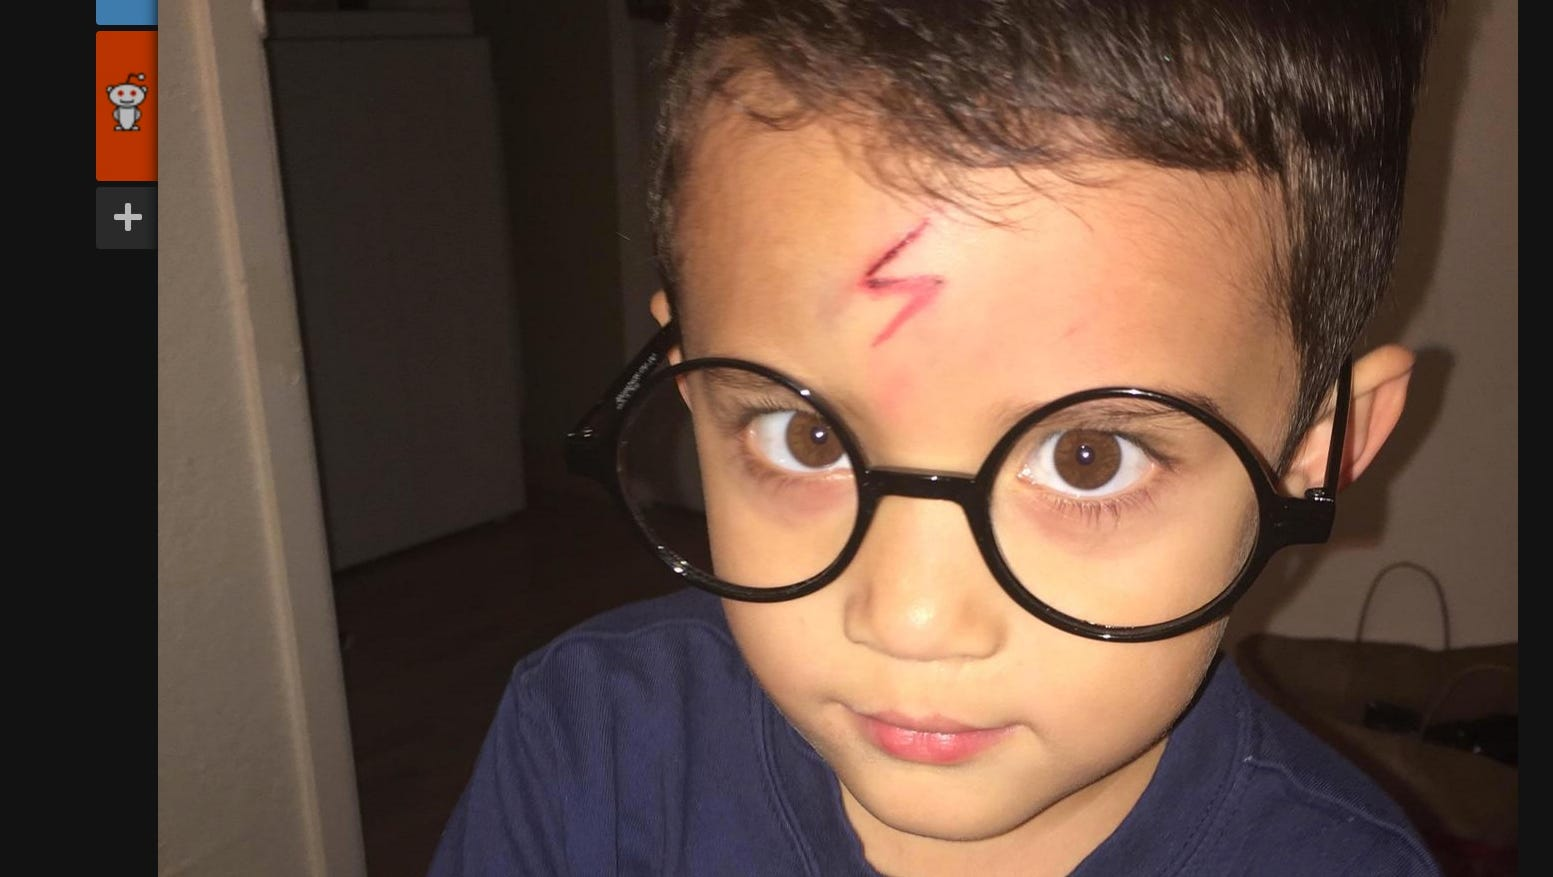 mom turns boy s forehead cut into harry potter themed scar forehead cut into harry potter themed scar